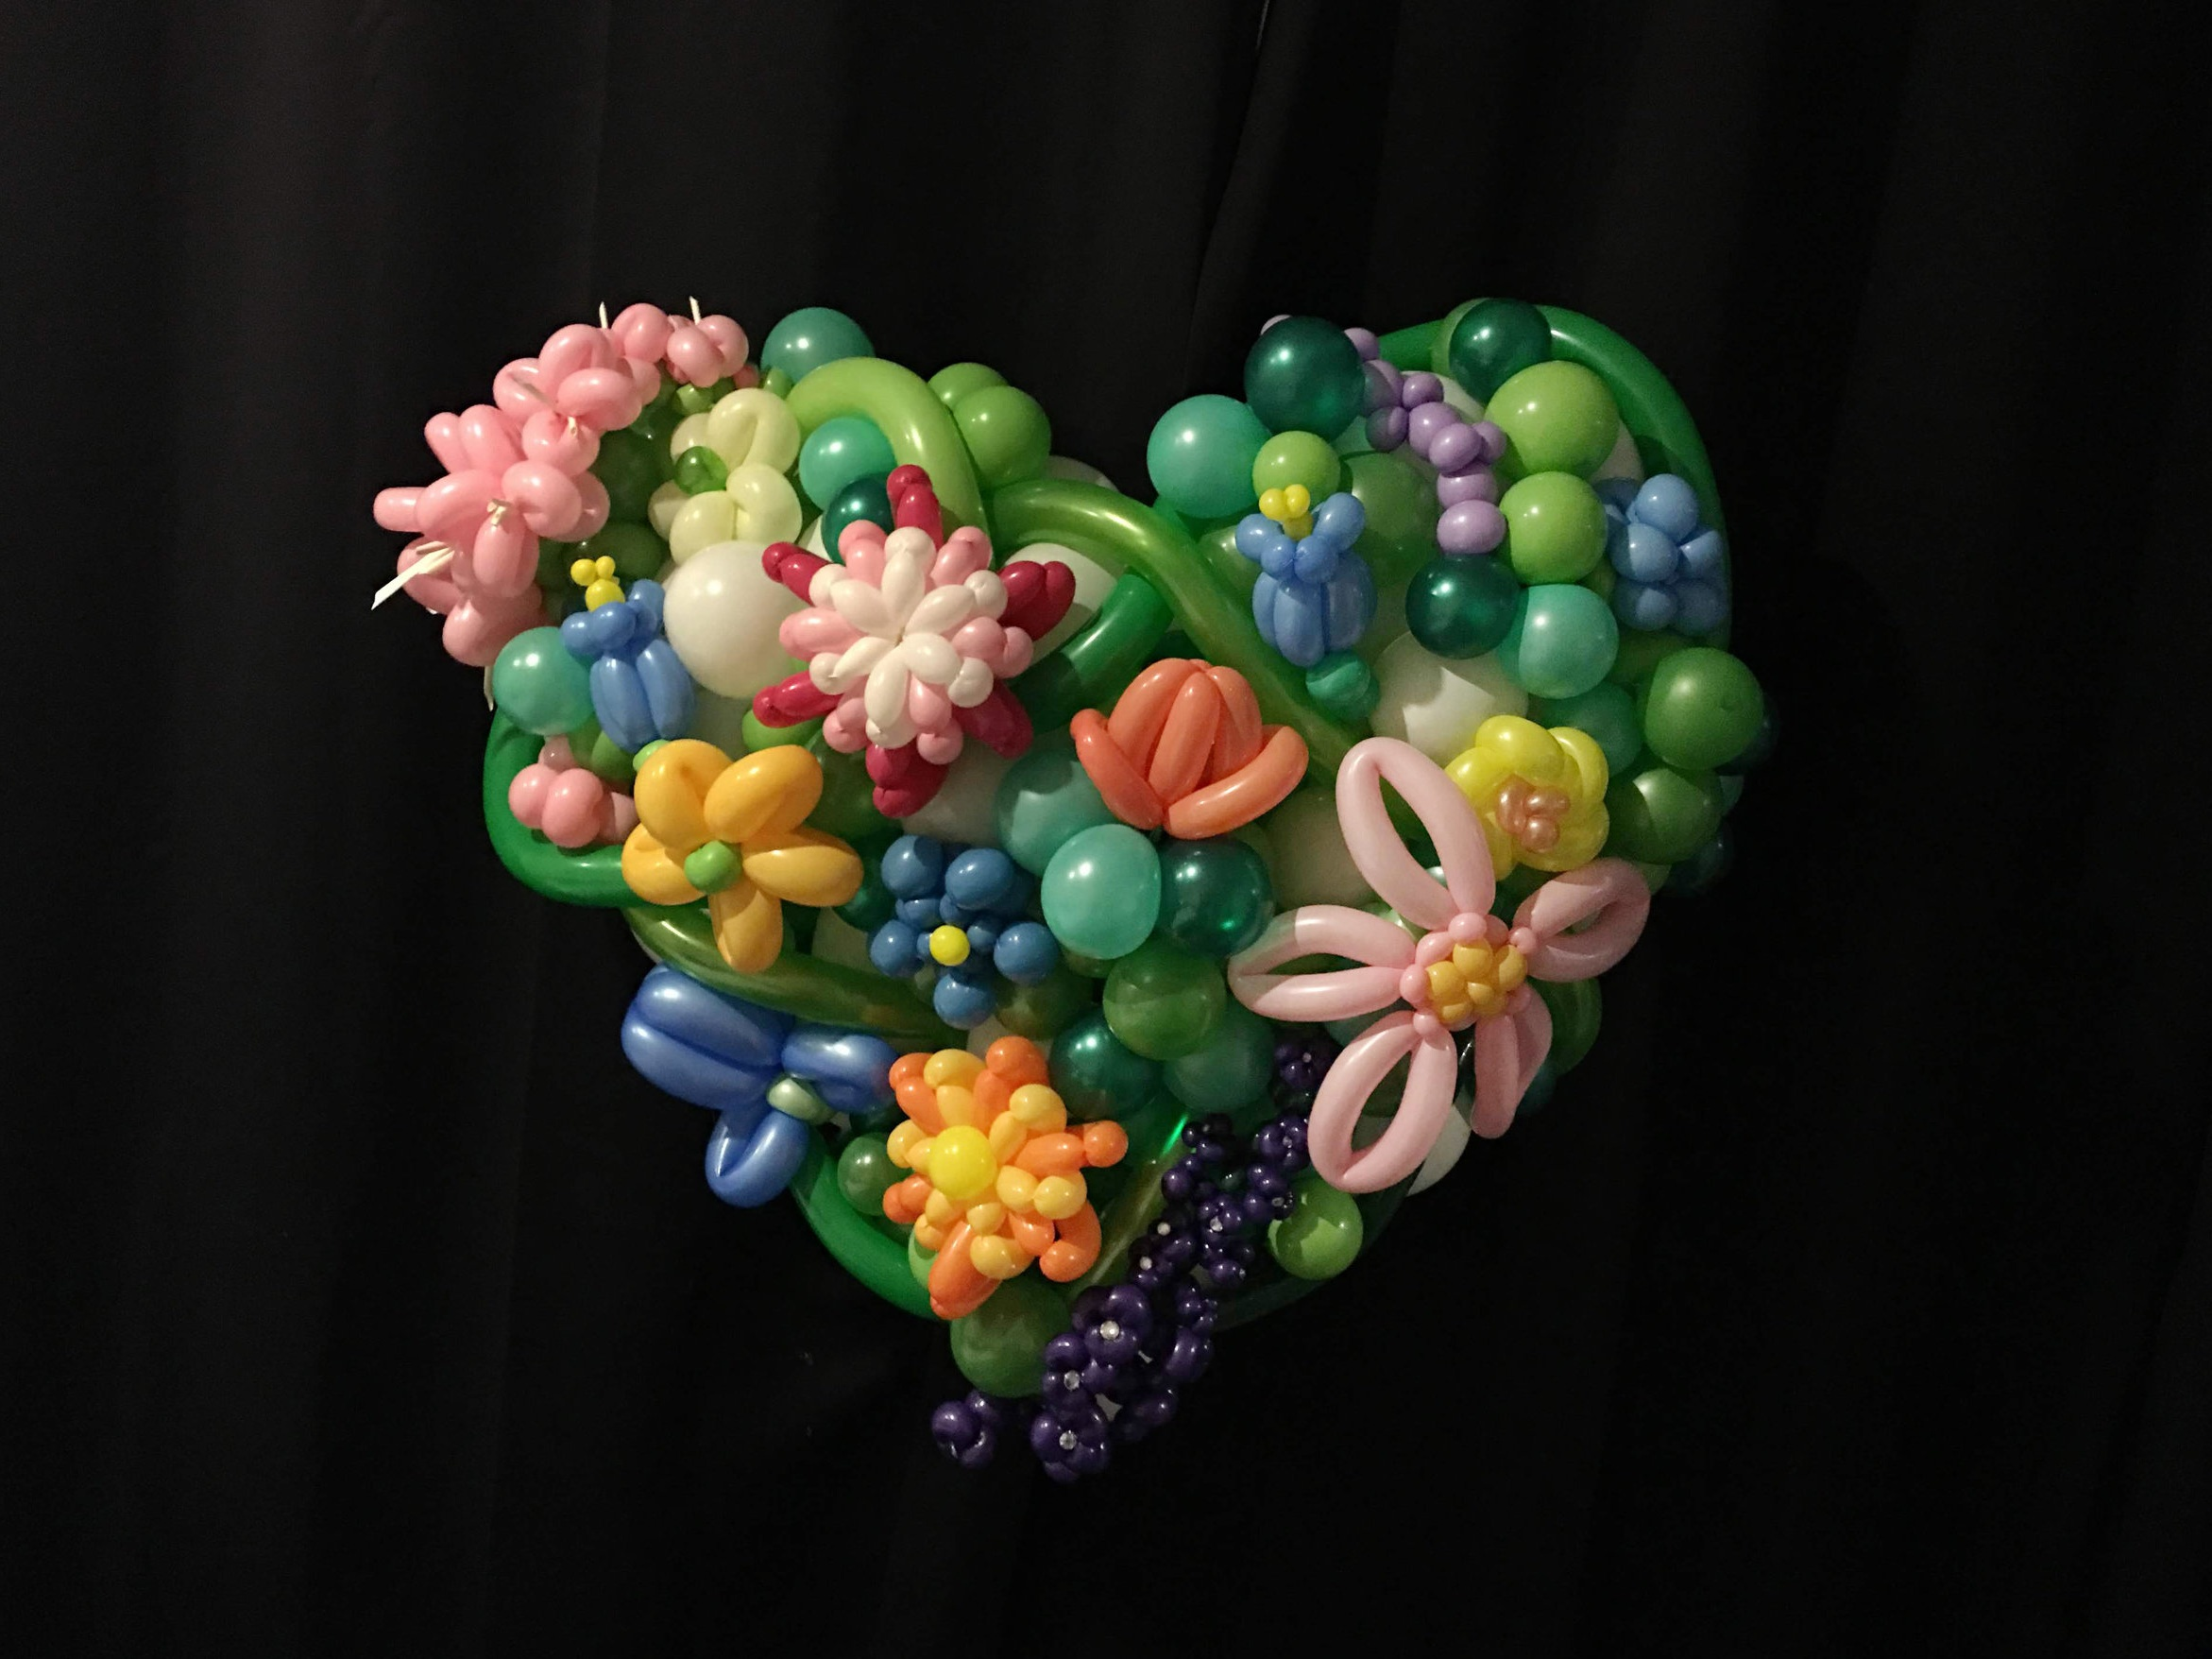 Balloon flower heart mount